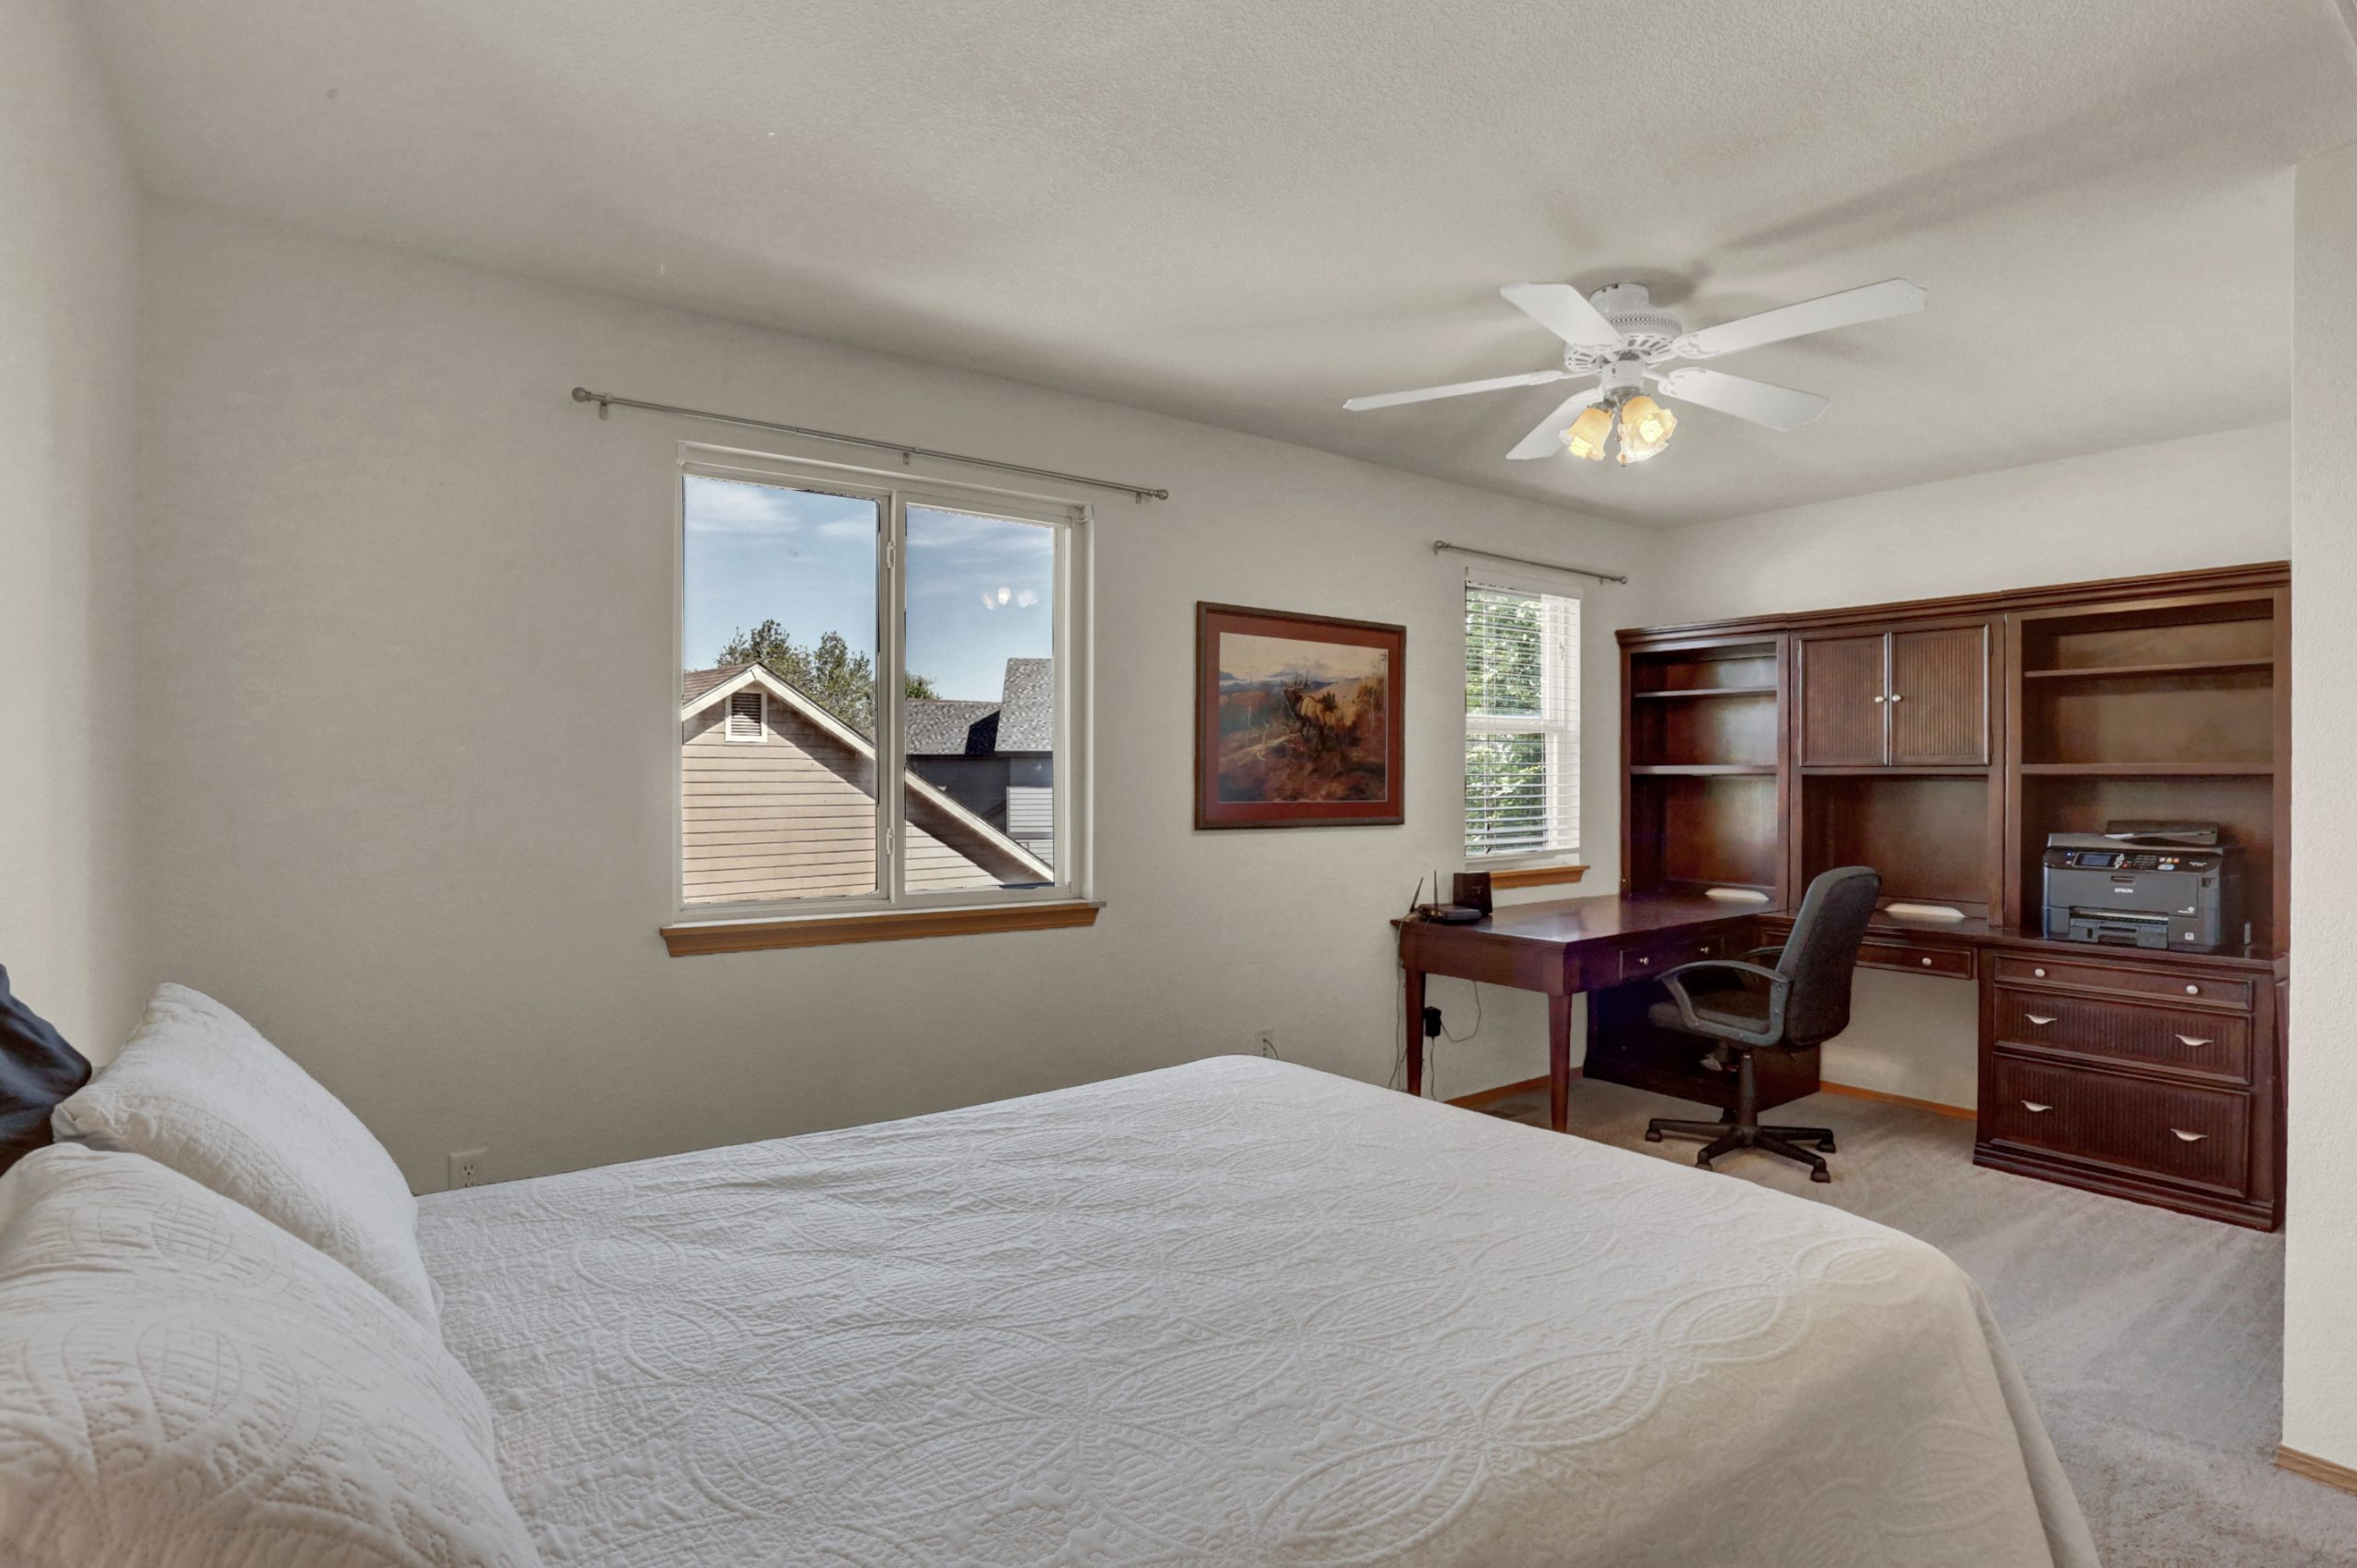 REAL ESTATE LISTING: 10502 Falcon St Firestone 2nd Bedroom